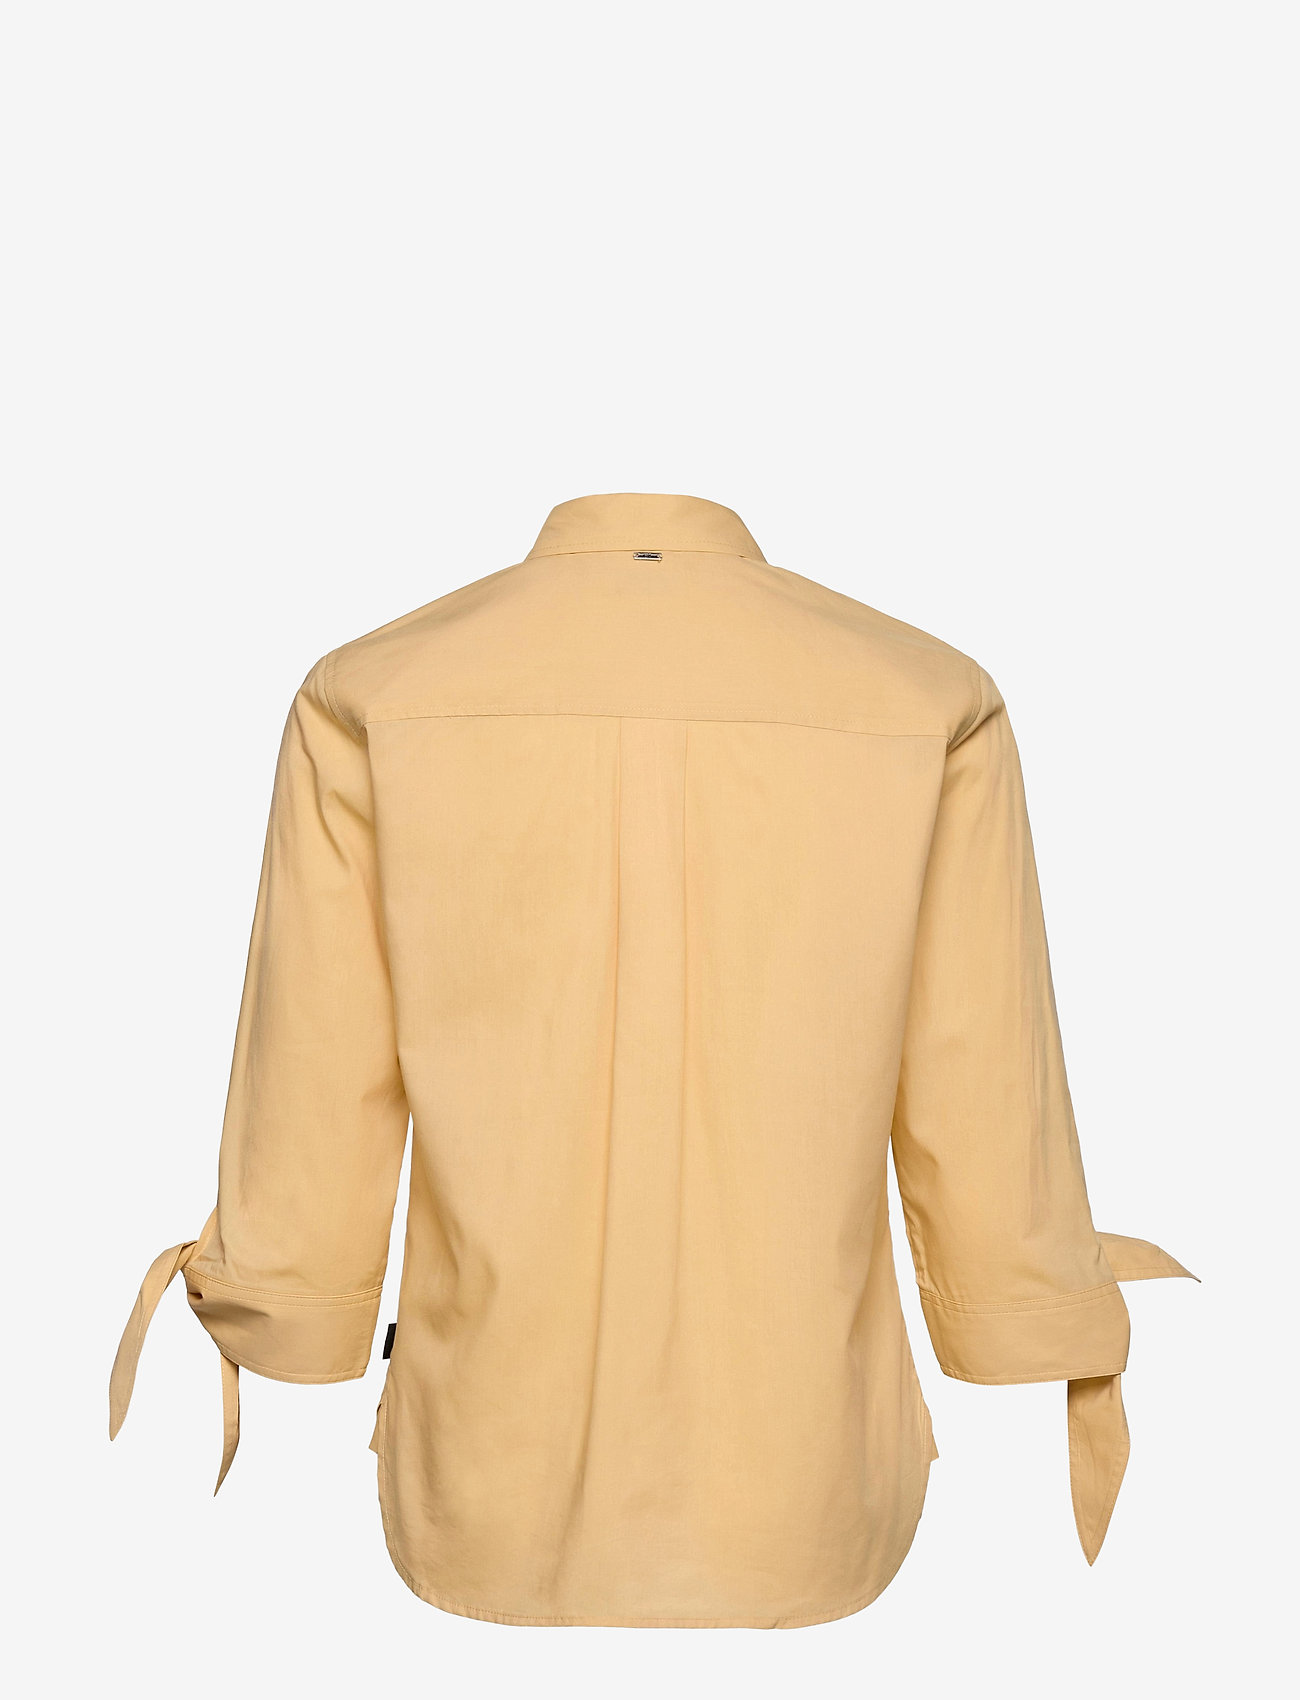 Soft Poplin 3/4 Tie Cuff Shirt (Muted Yellow) (900 kr) - Calvin Klein